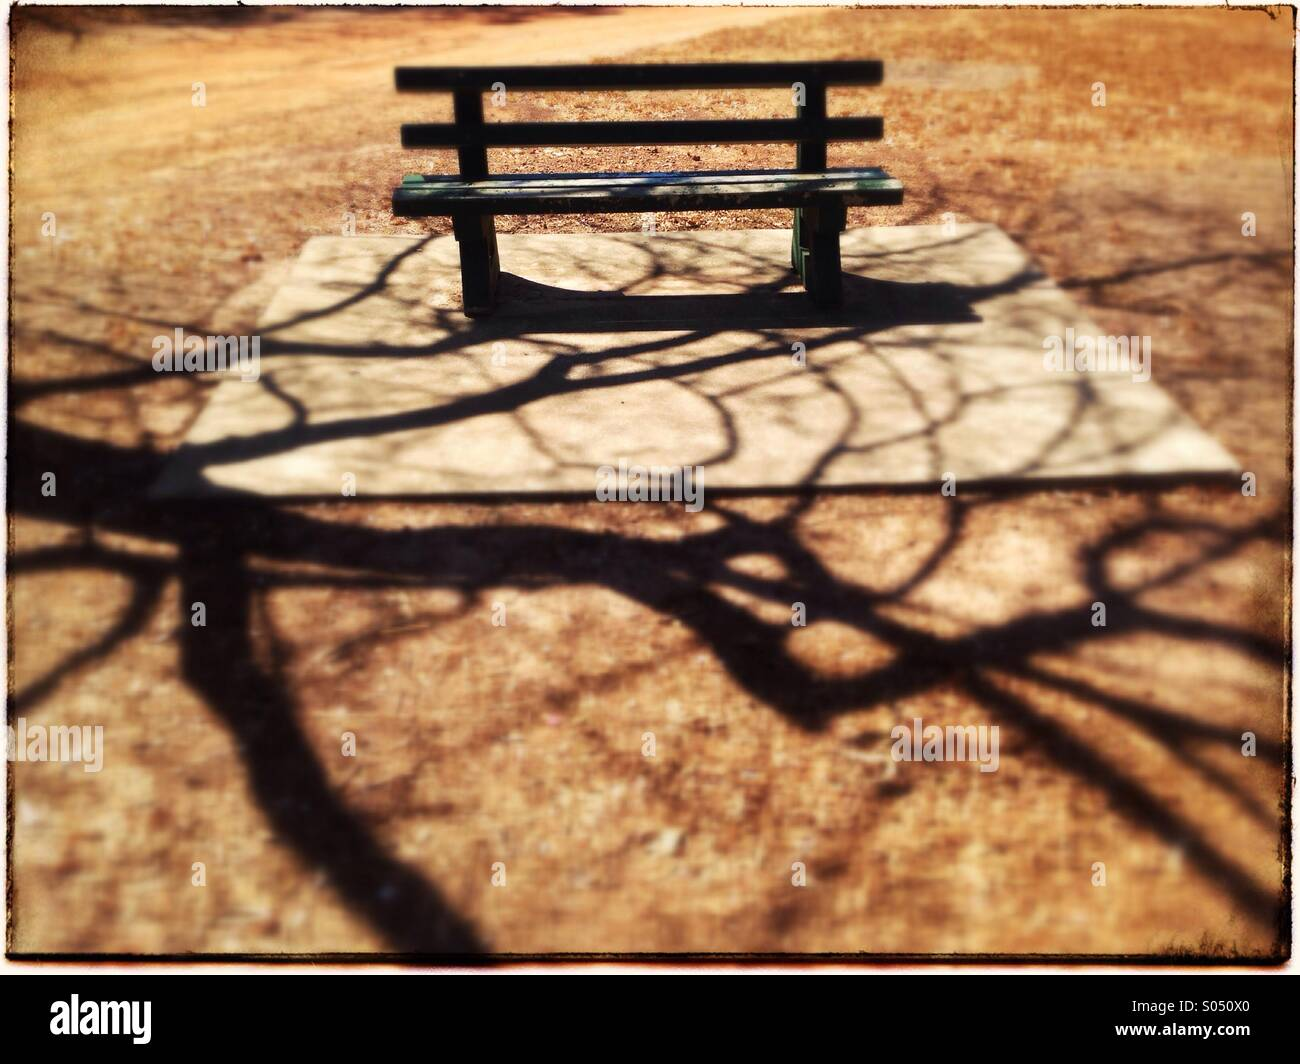 Bench in a public park. - Stock Image